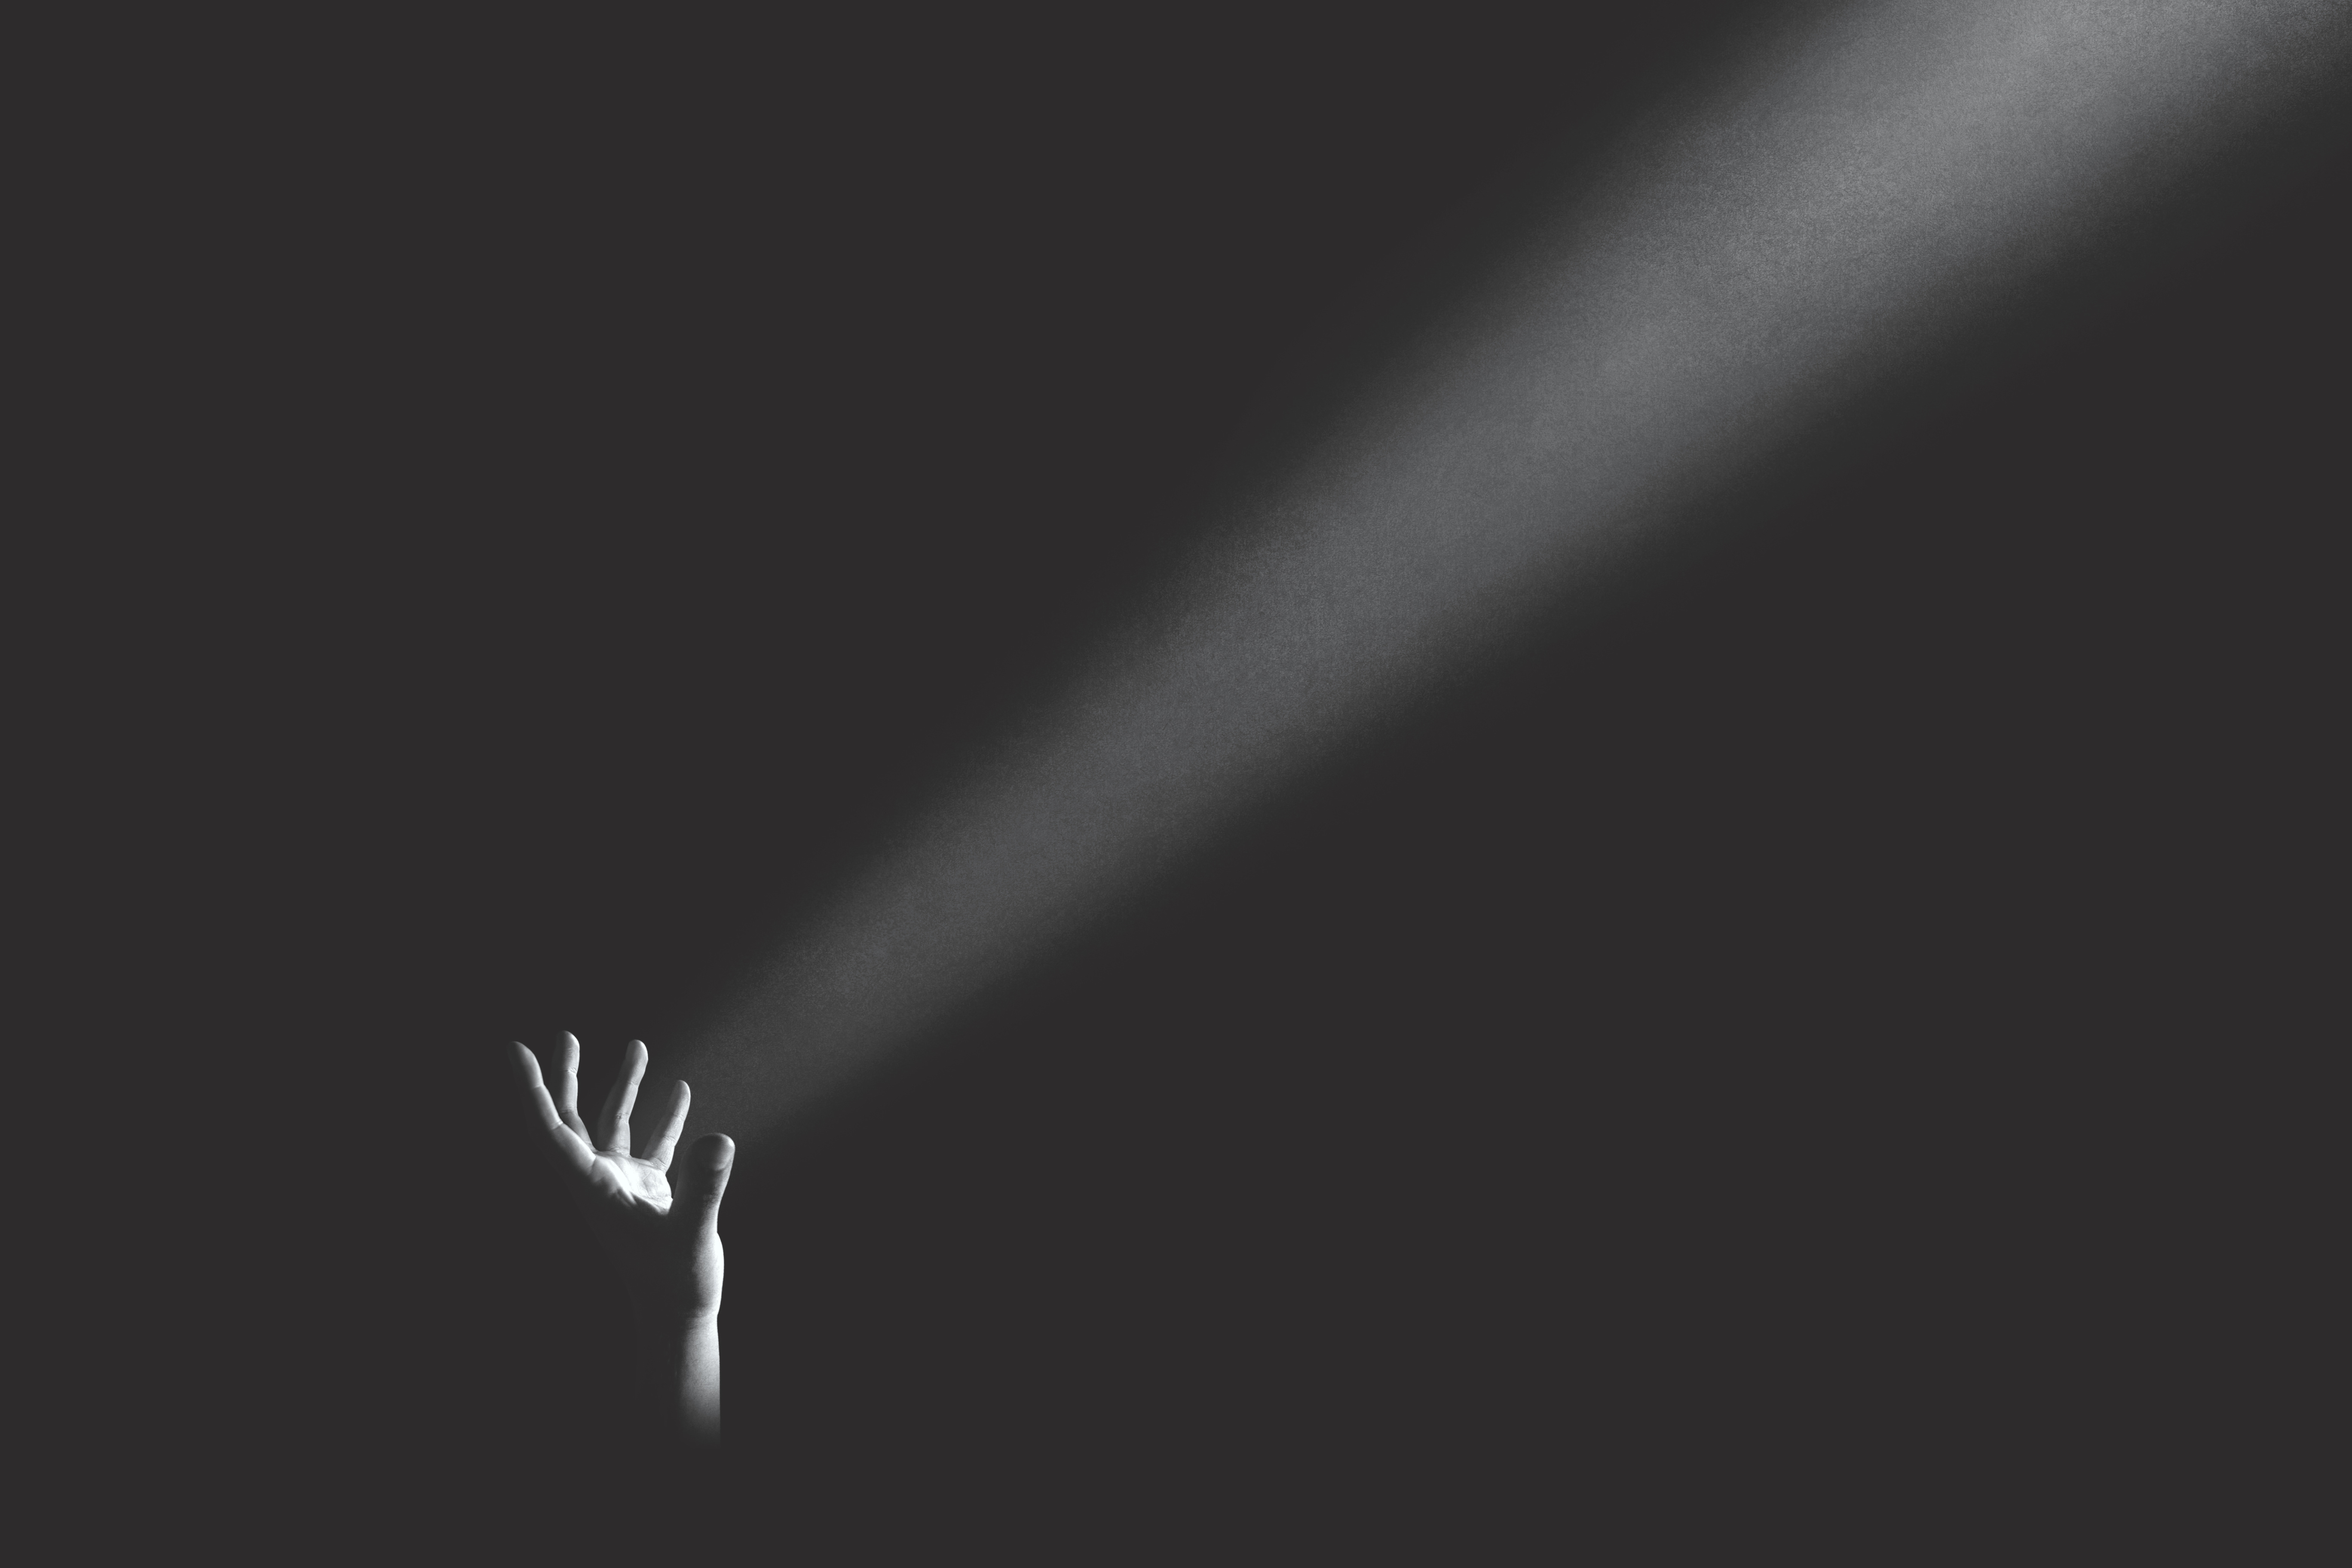 A hand projecting light into darkness